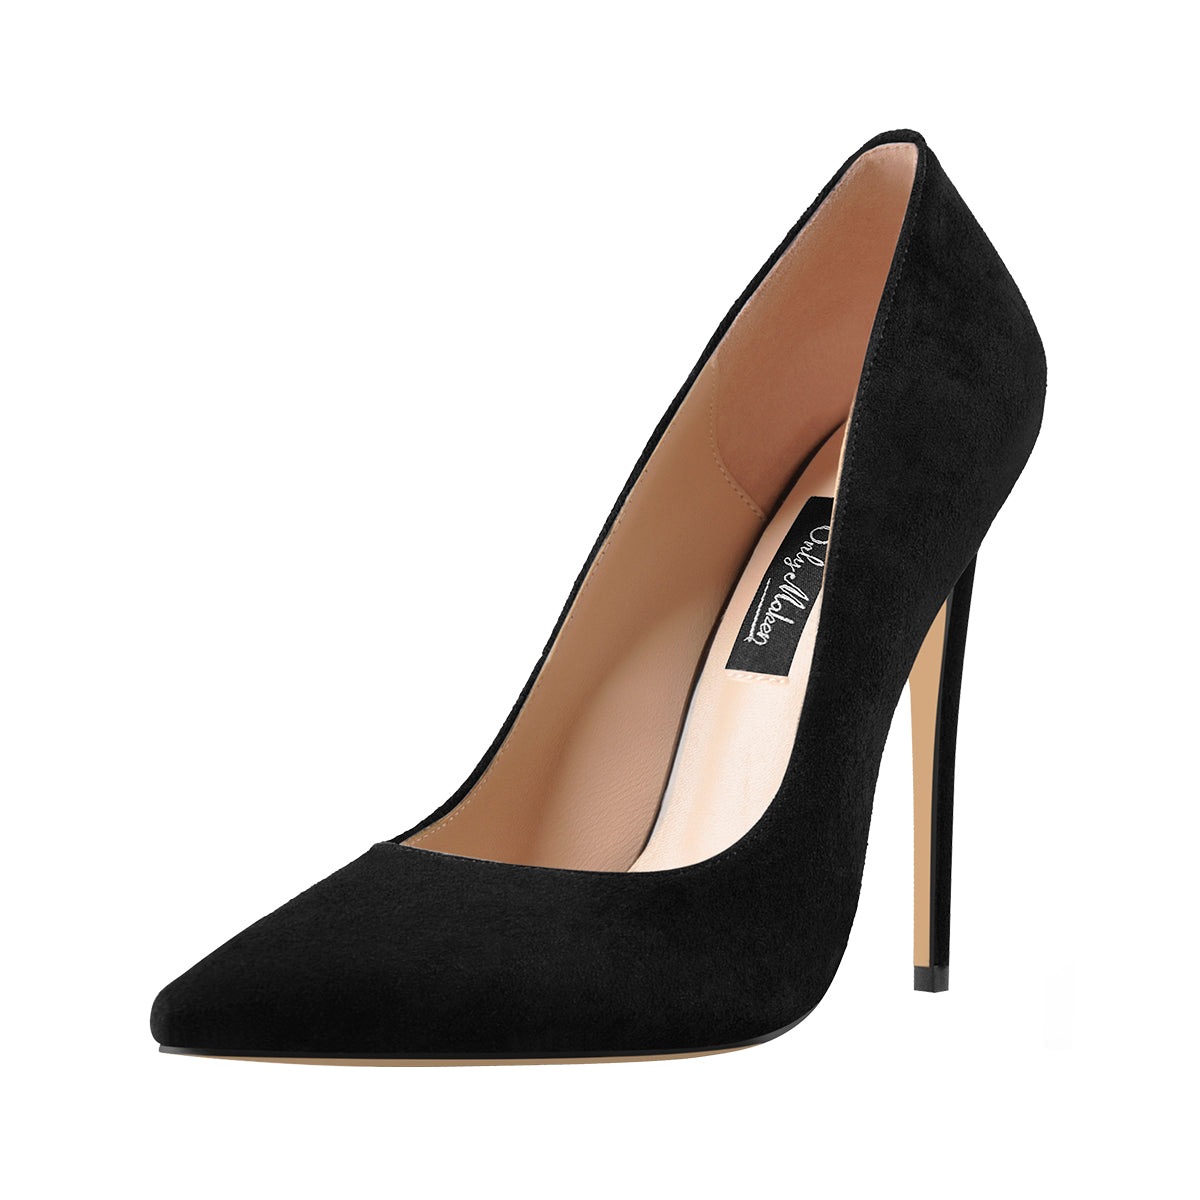 8cm 10cm 12cm Black Suede Pointed Toe Slip On High Heel Pumps